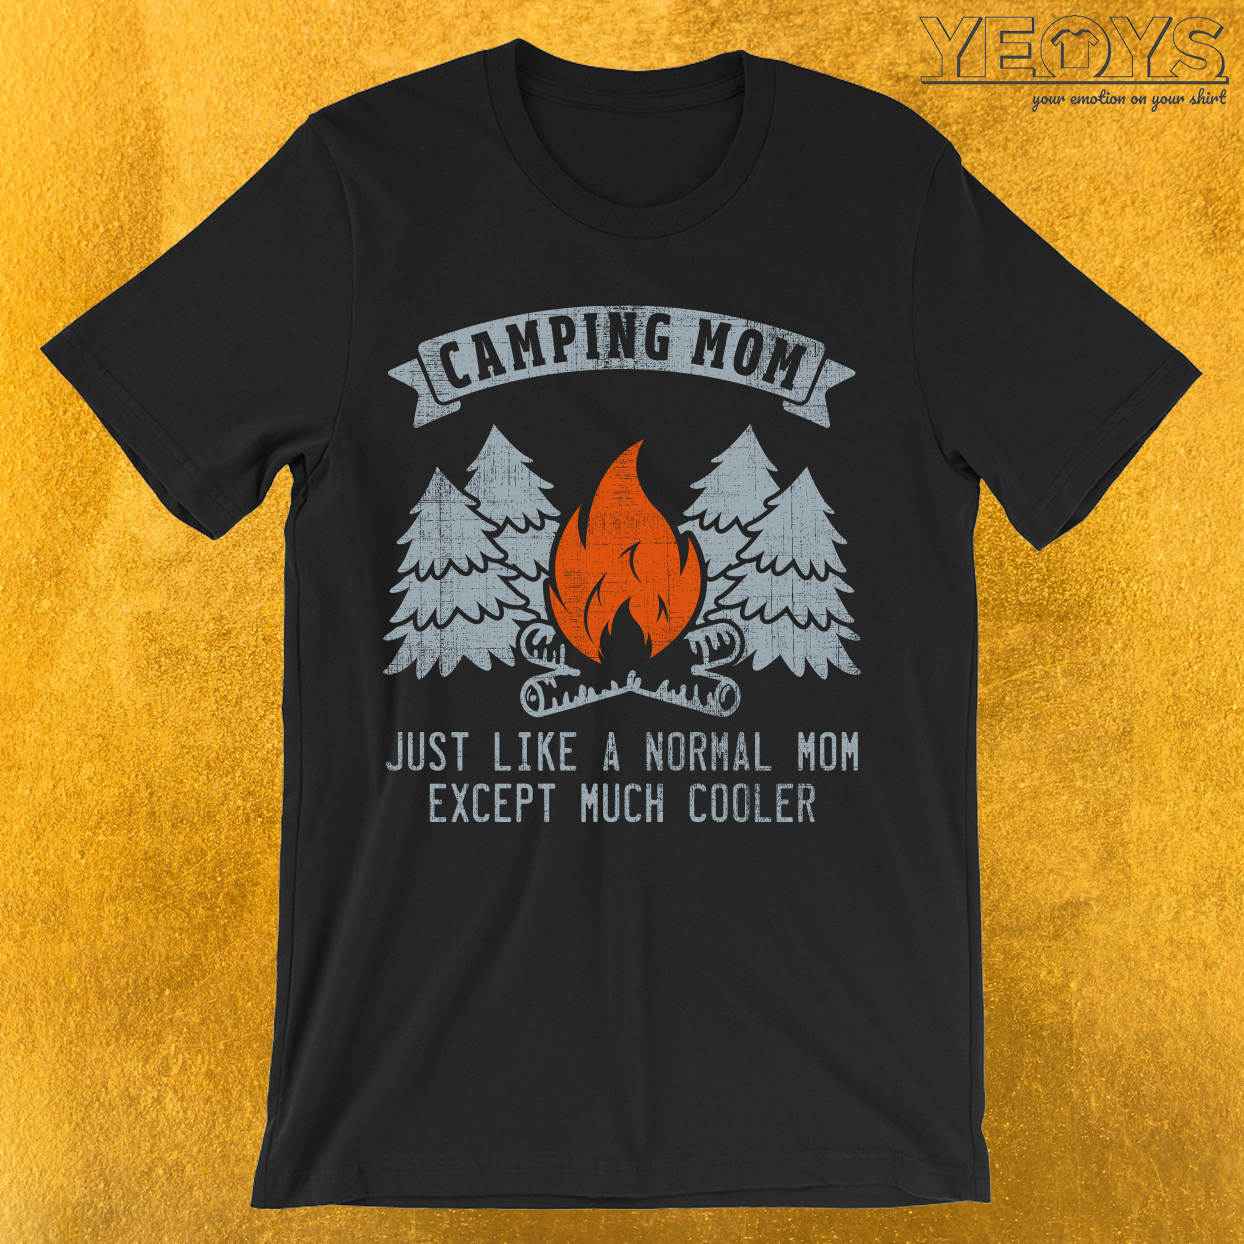 Camping Mom Just Like A Normal Mom T-Shirt